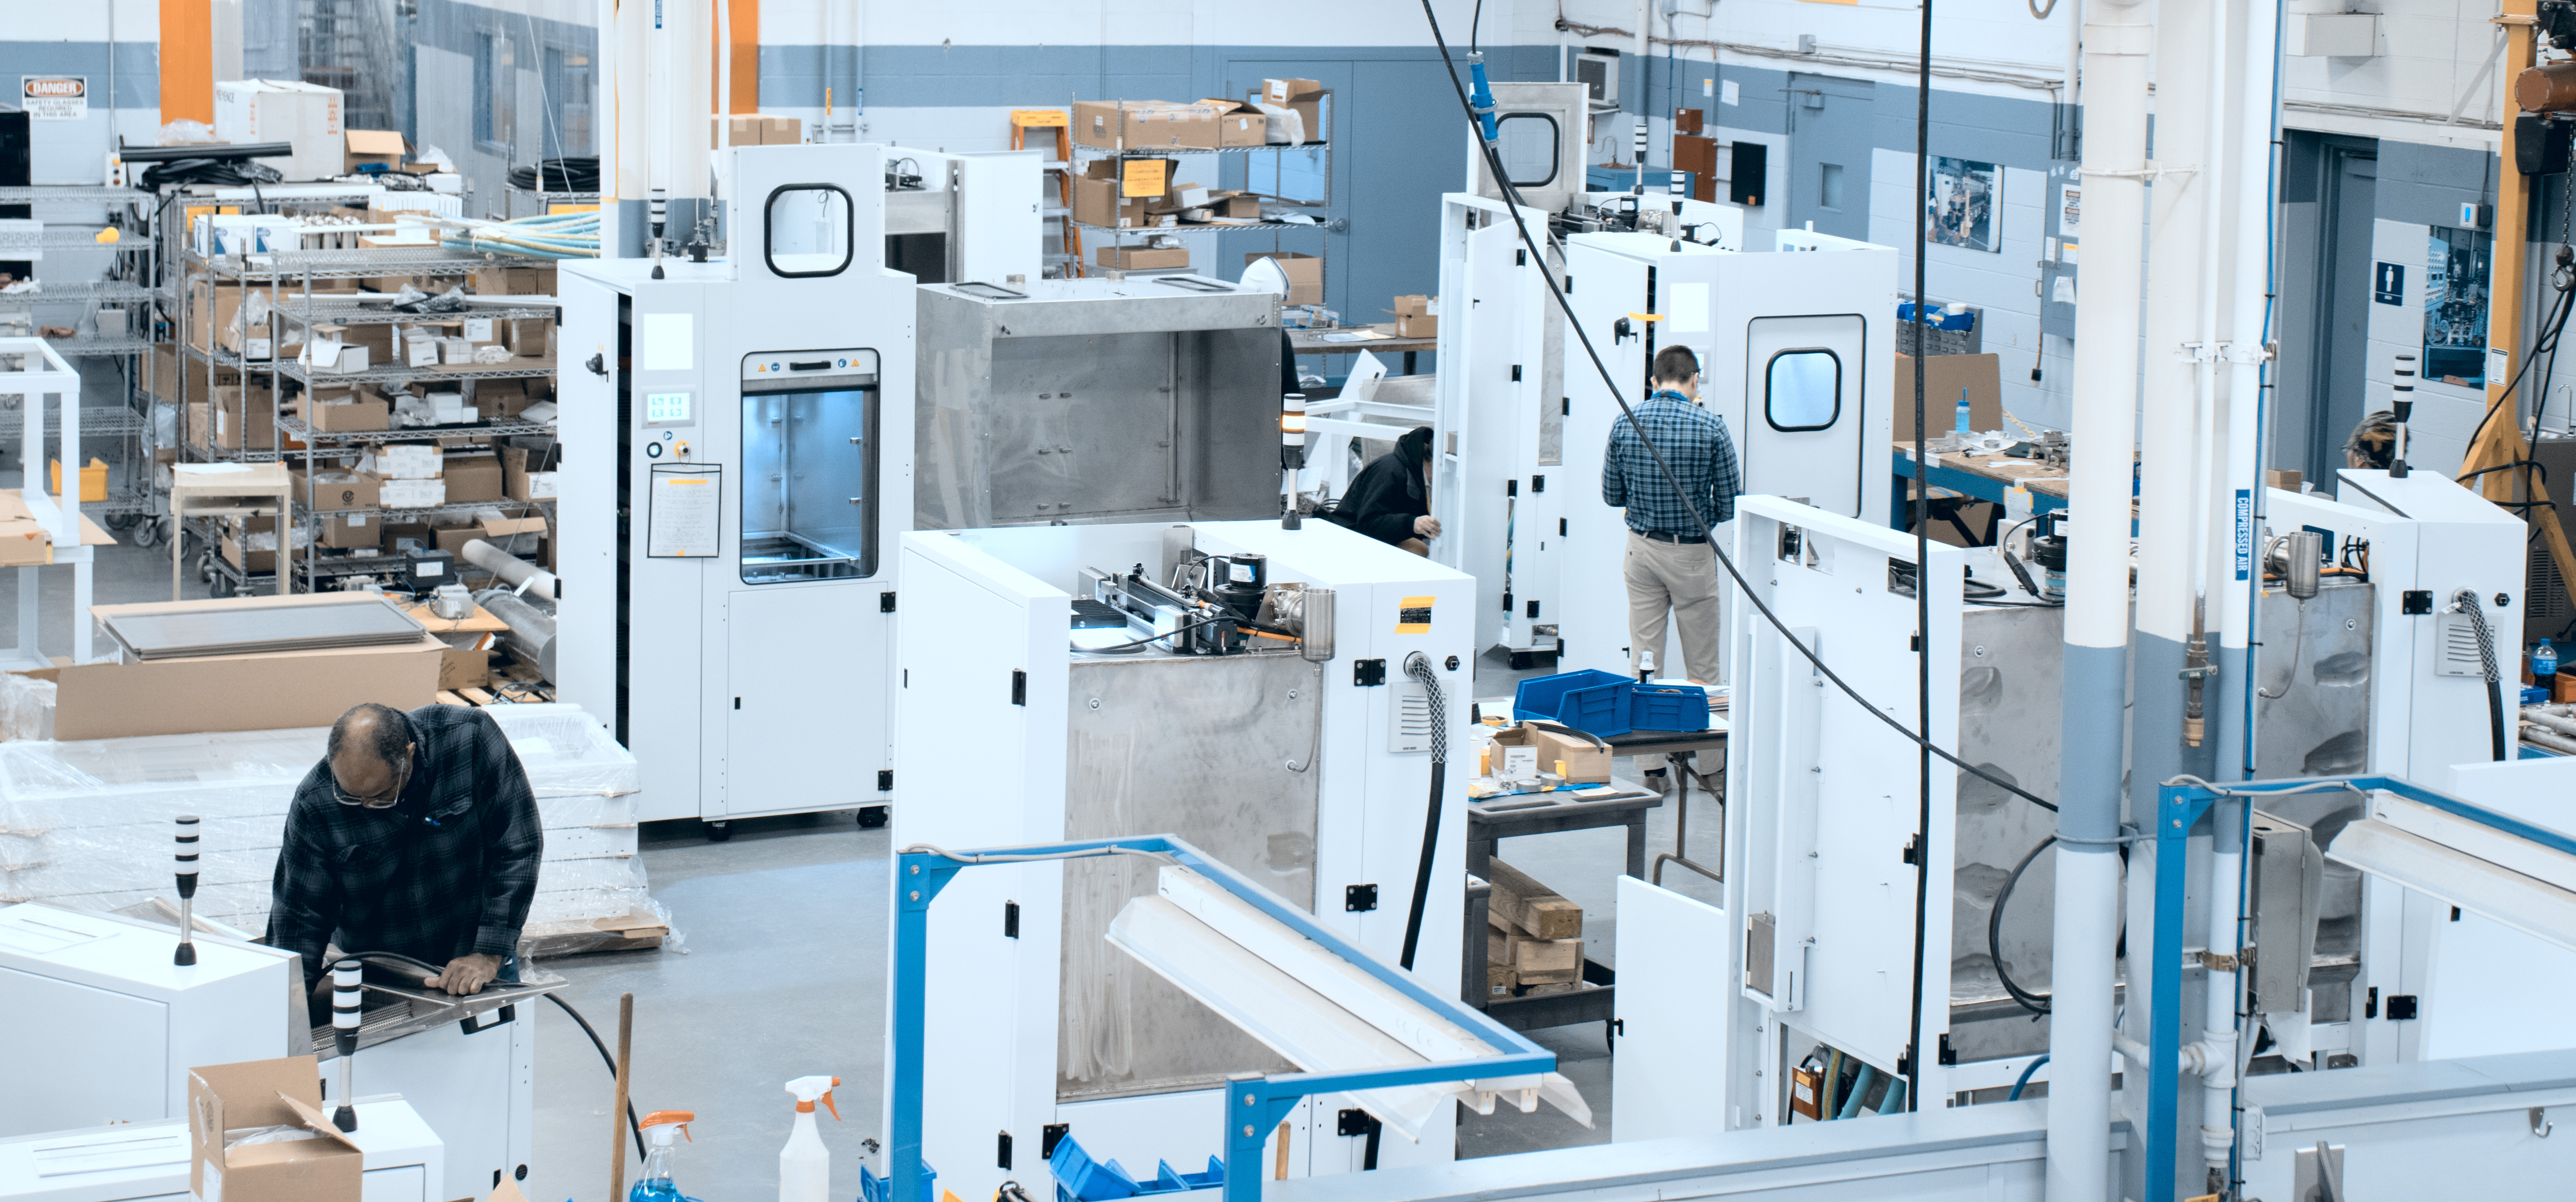 Four large white machine builds on the manufacturing floor with assemblers